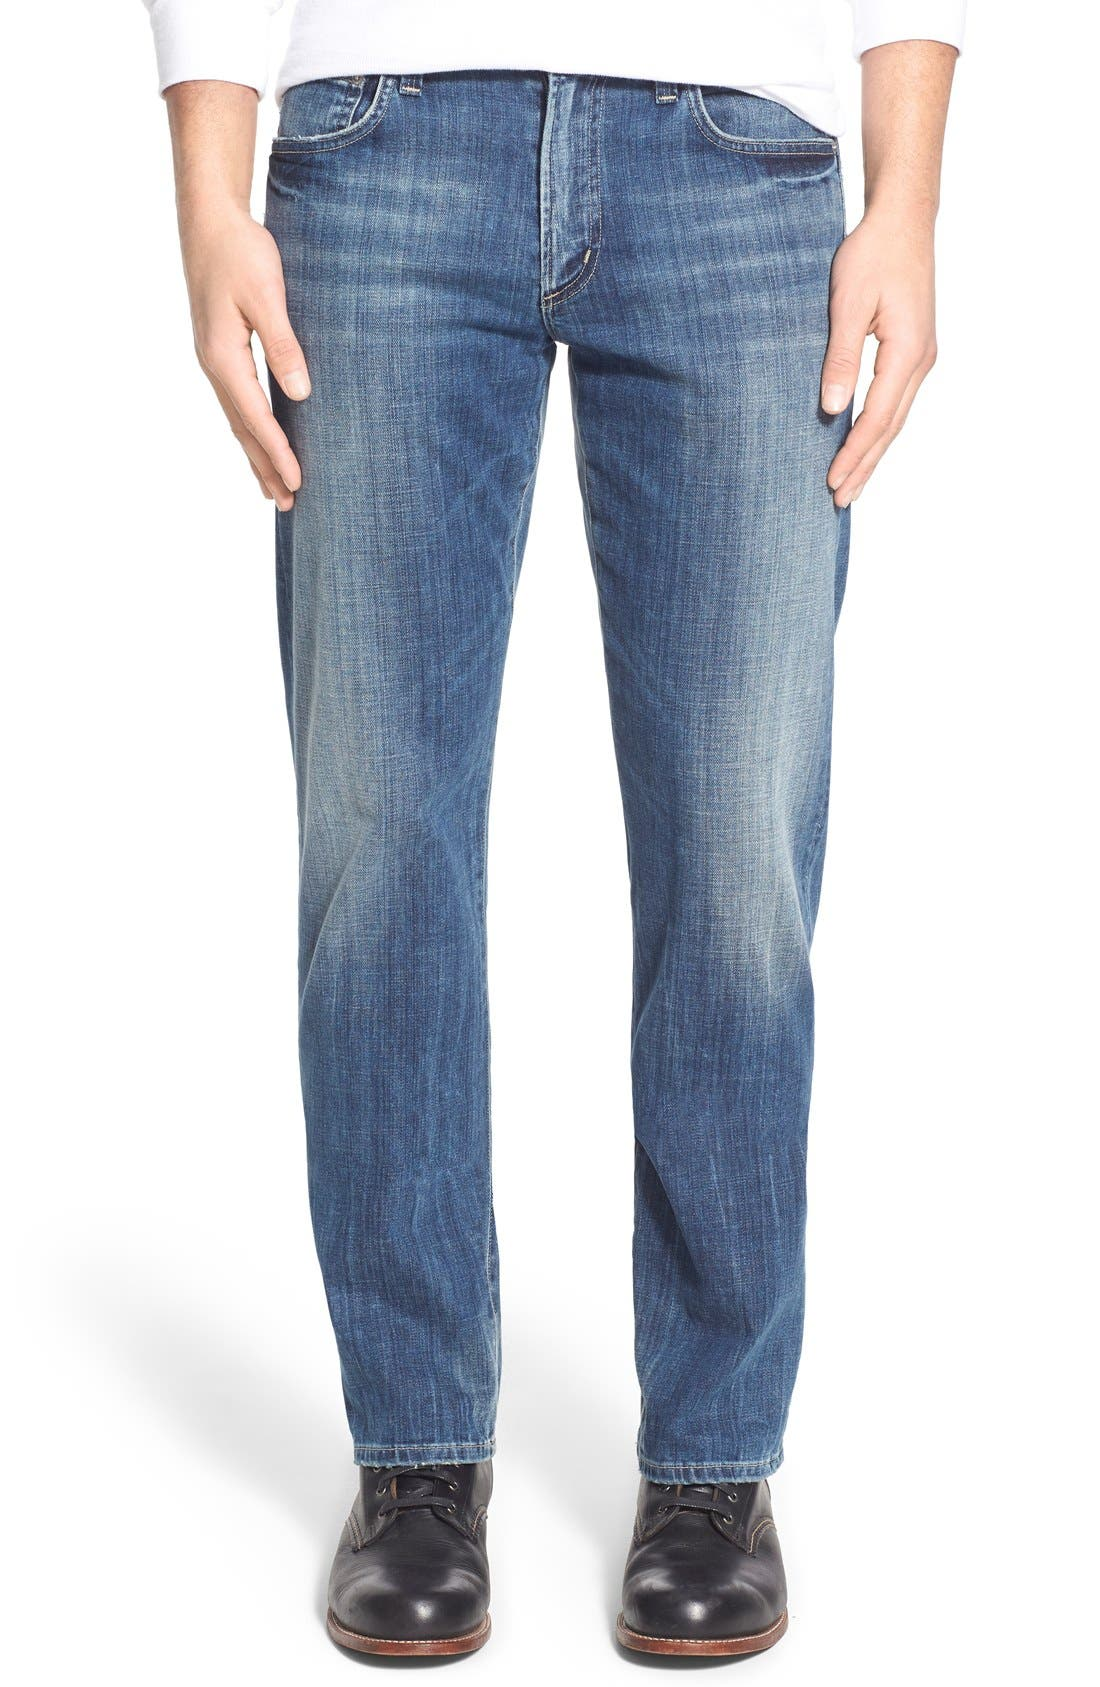 Alternate Image 1 Selected - Citizens of Humanity 'Sid' Straight Leg Jeans (Ripley)